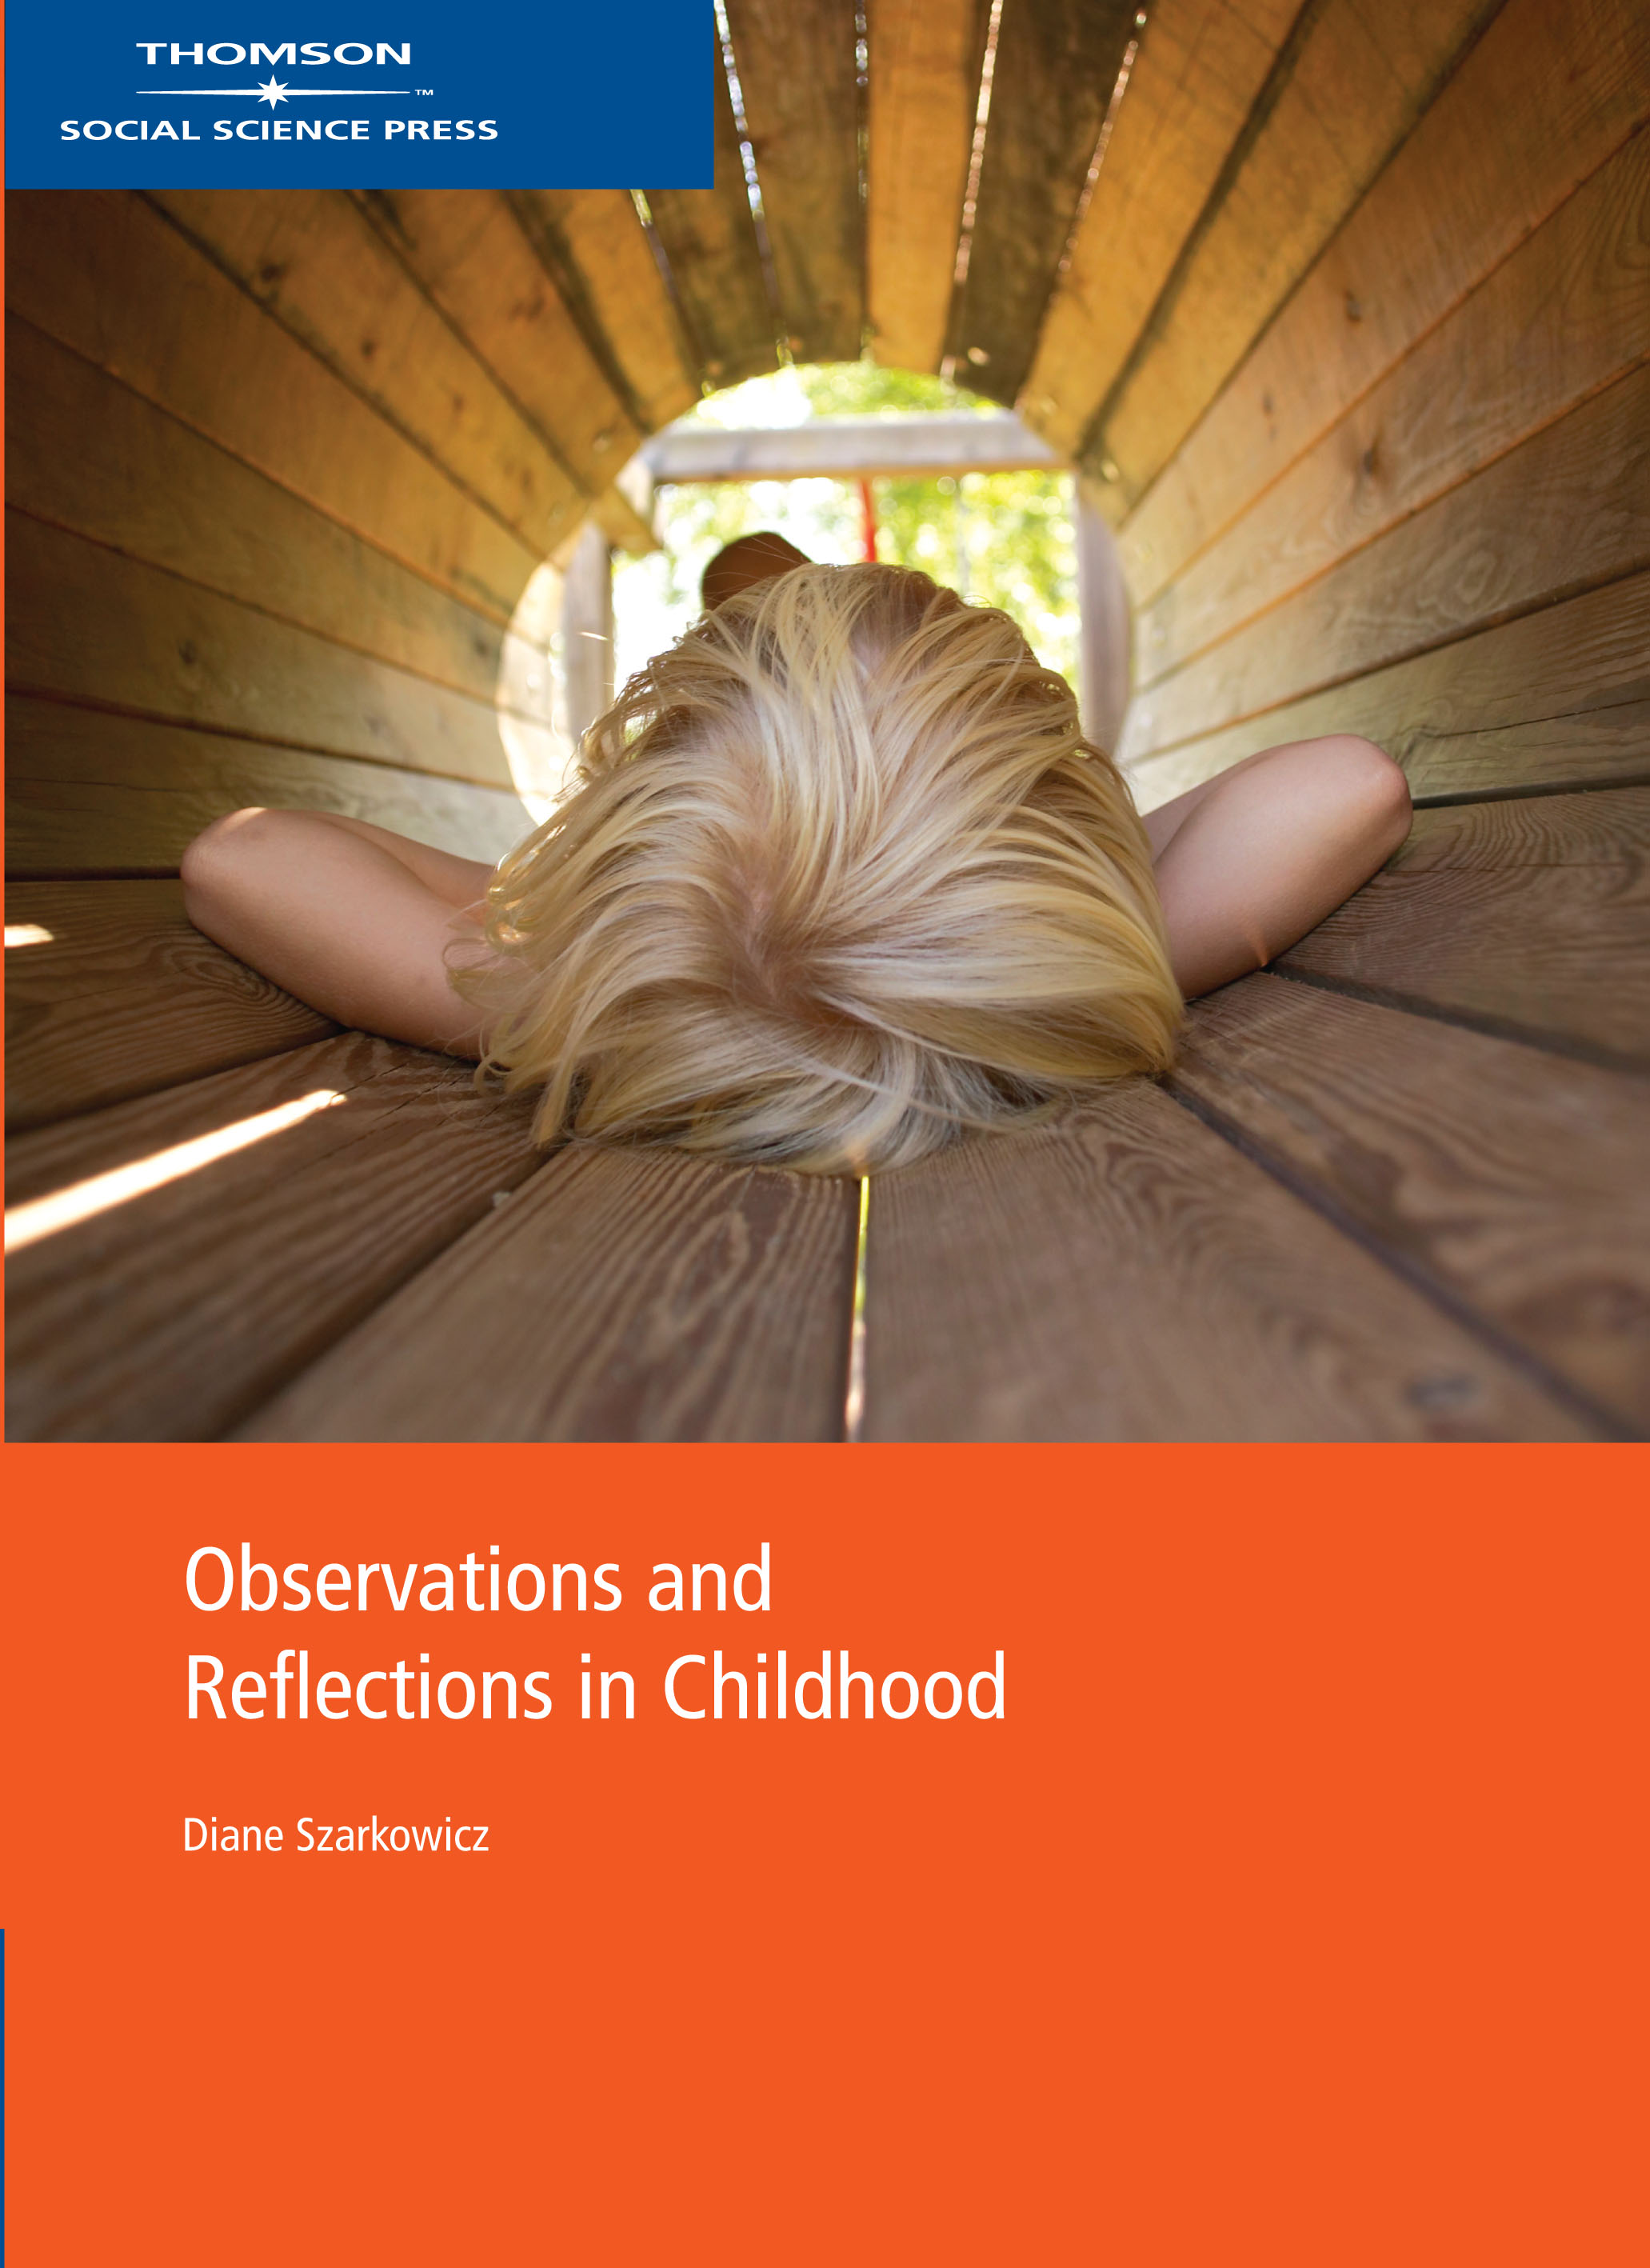 Observations and Reflections in Childhood - 9780170129732